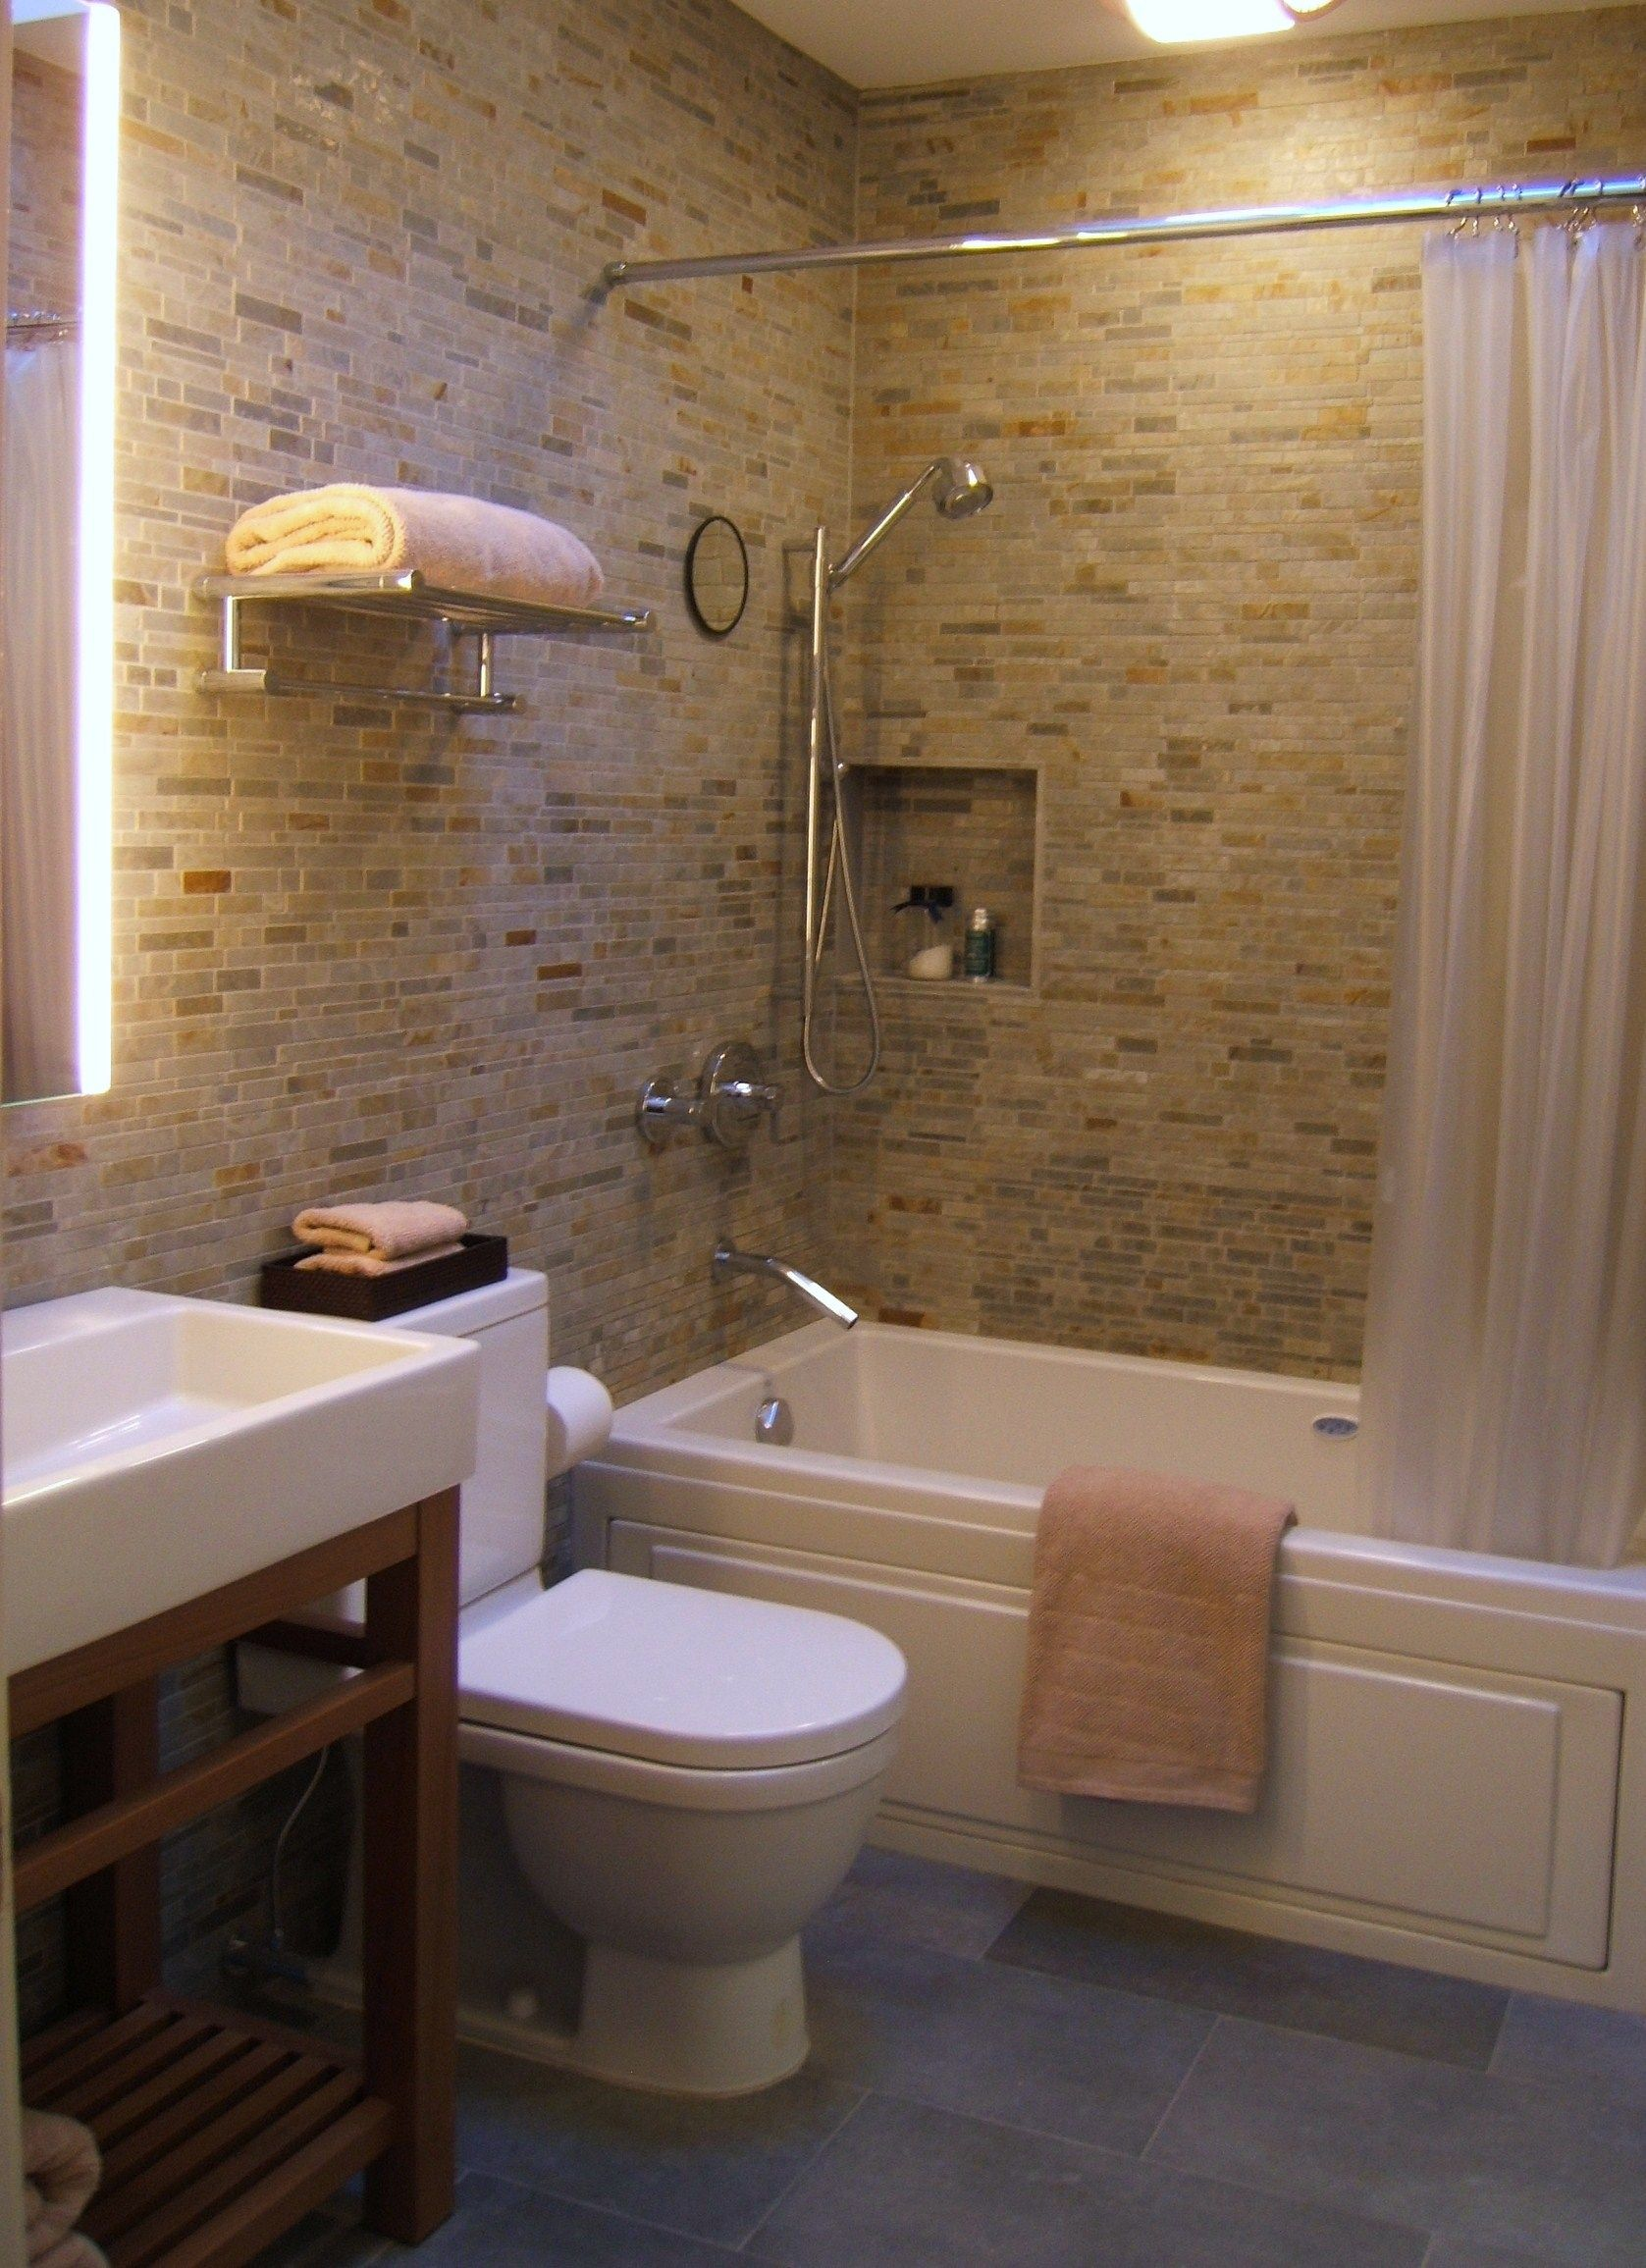 Small bathroom designs south africa small bath for Small restroom design ideas